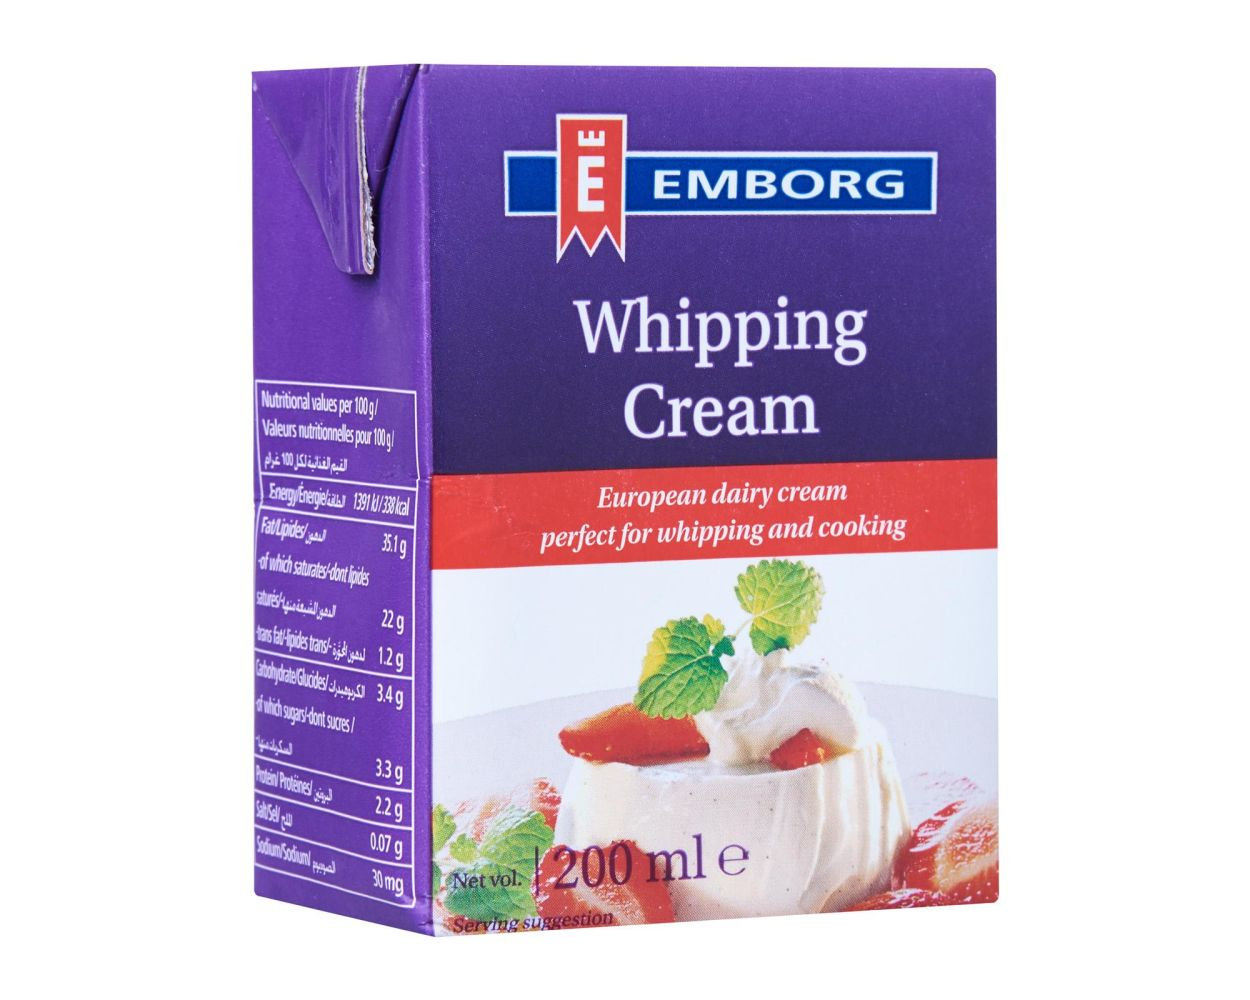 Emborg Whipped Cream UHT 200gm- 2 Hours Free Delivery Anywhere in Karachi Pakistan